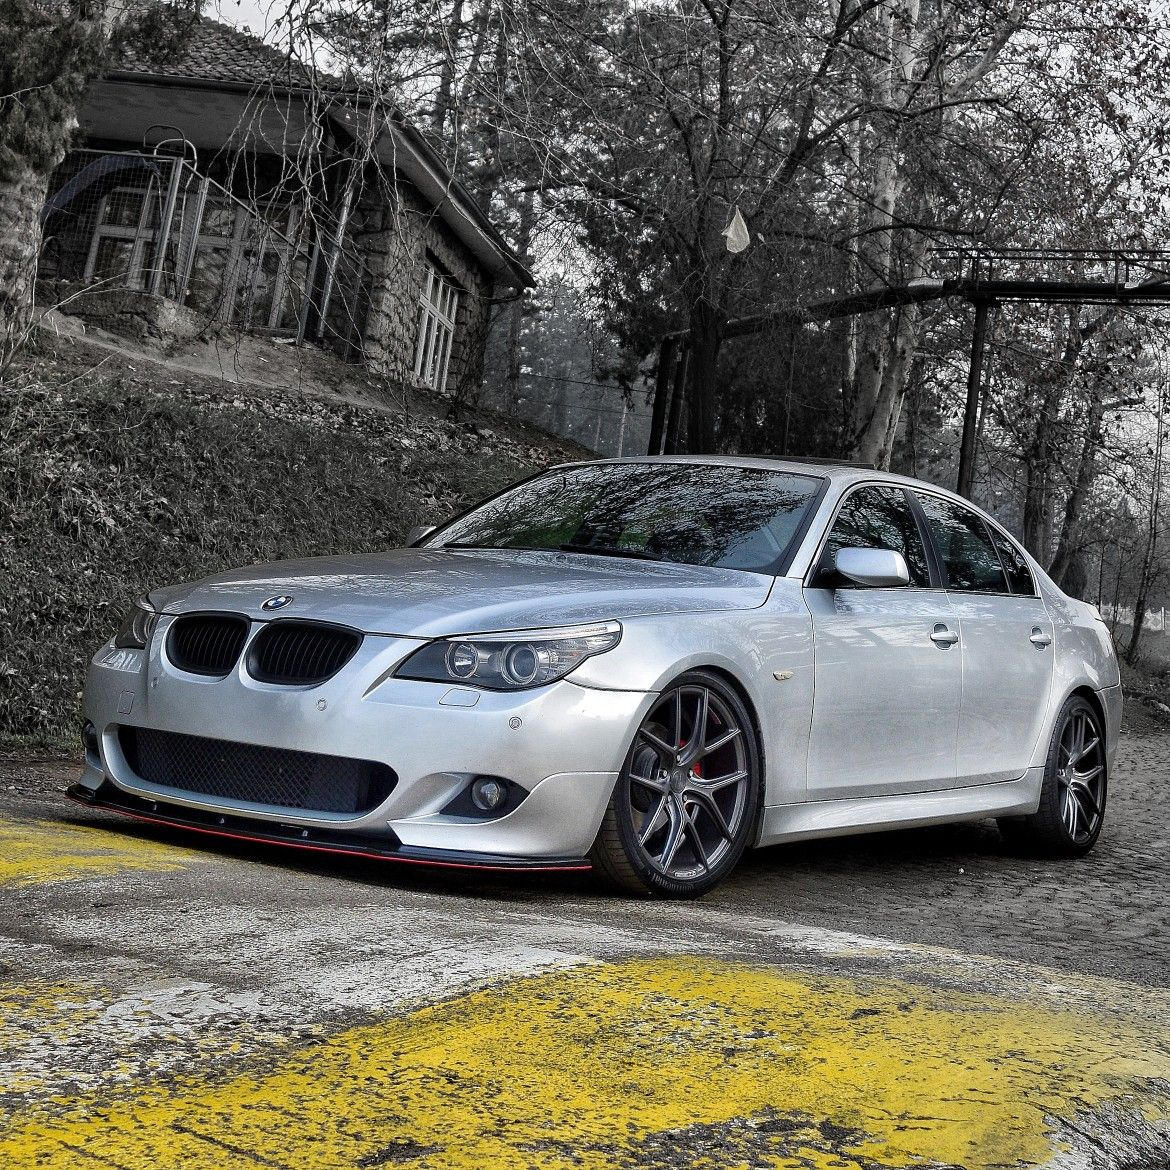 My BMW E60 2004 525D BMW e60 Instagram bmw5